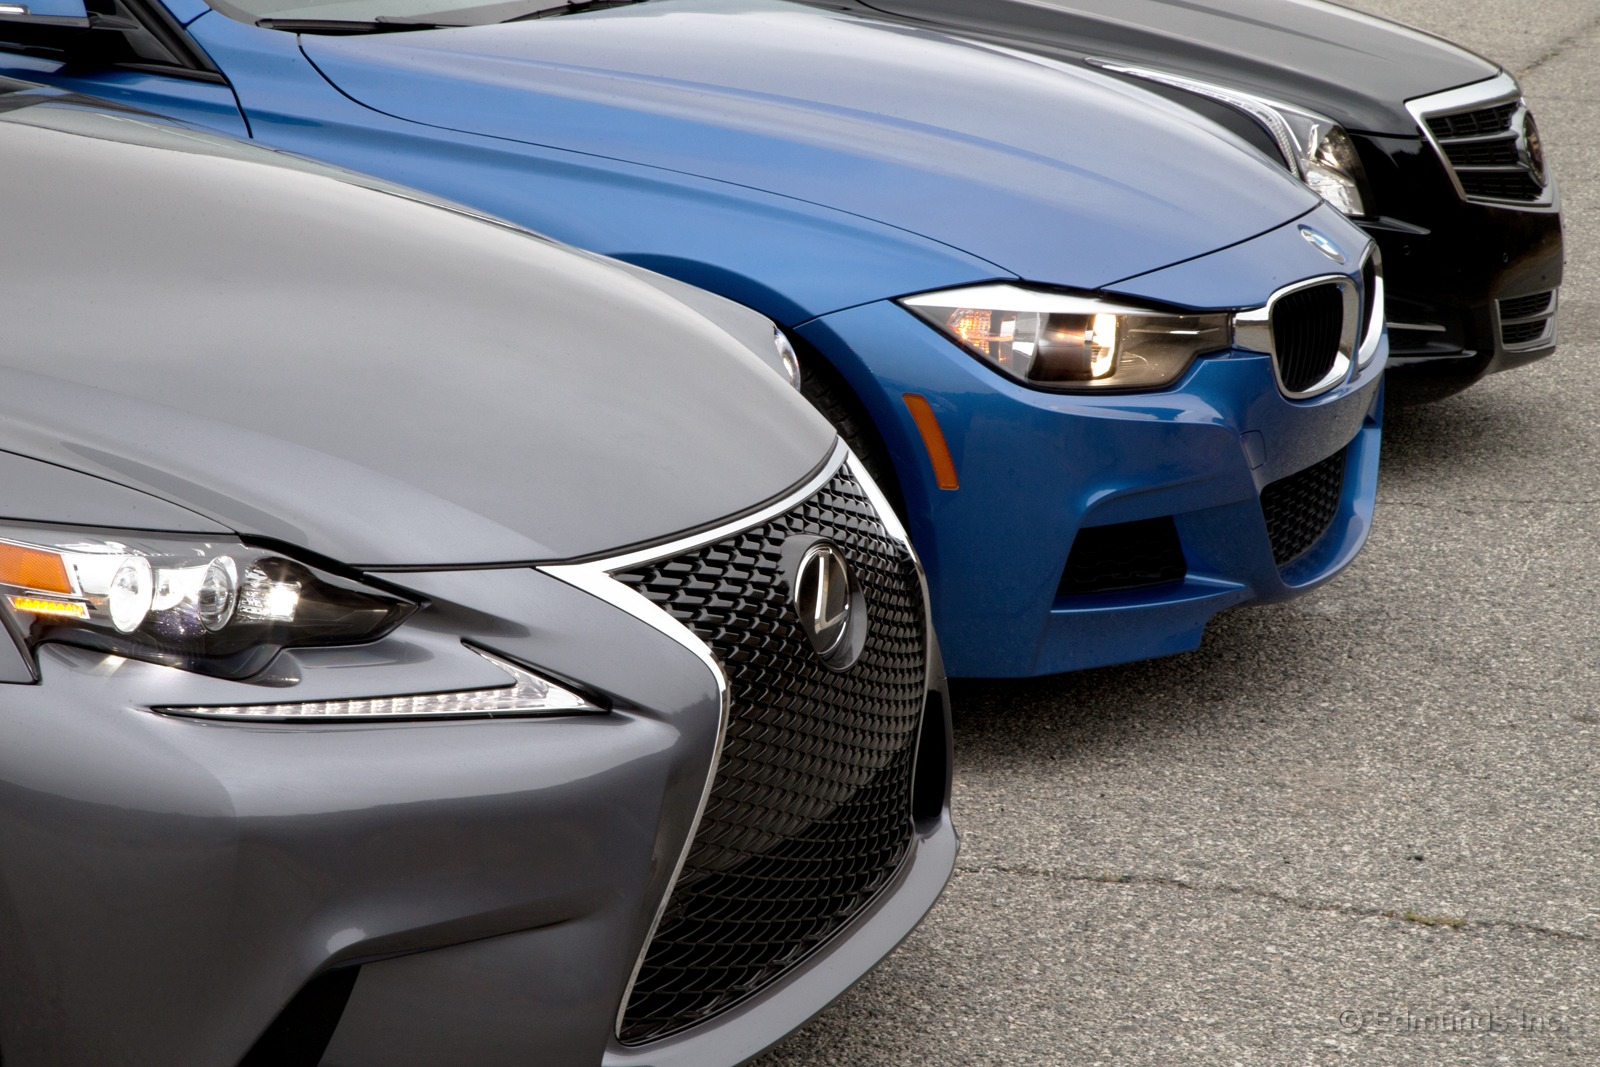 Bmw 328i Vs Cadillac Ats 2 0 Vs 2014 Lexus Is 250